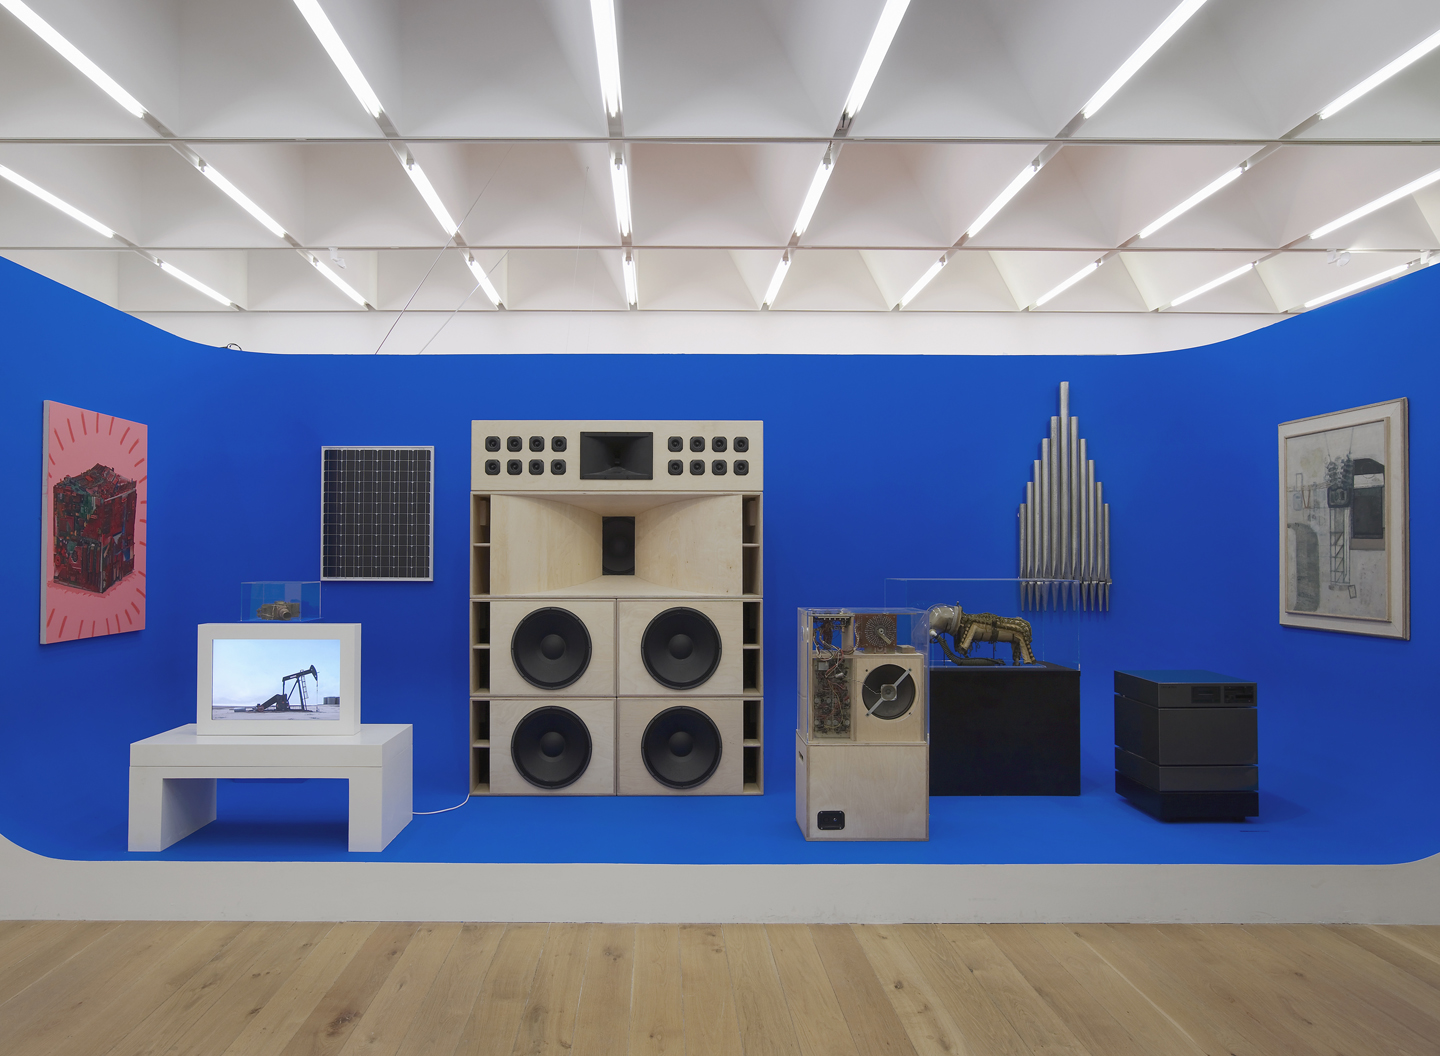 Mark Leckey, The Universal Addressability of Dumb Things installation view at Nottingham Contemporary, Nottingham, 2013. Courtesy: the artist and Gavin Brown's Enterprise, New York